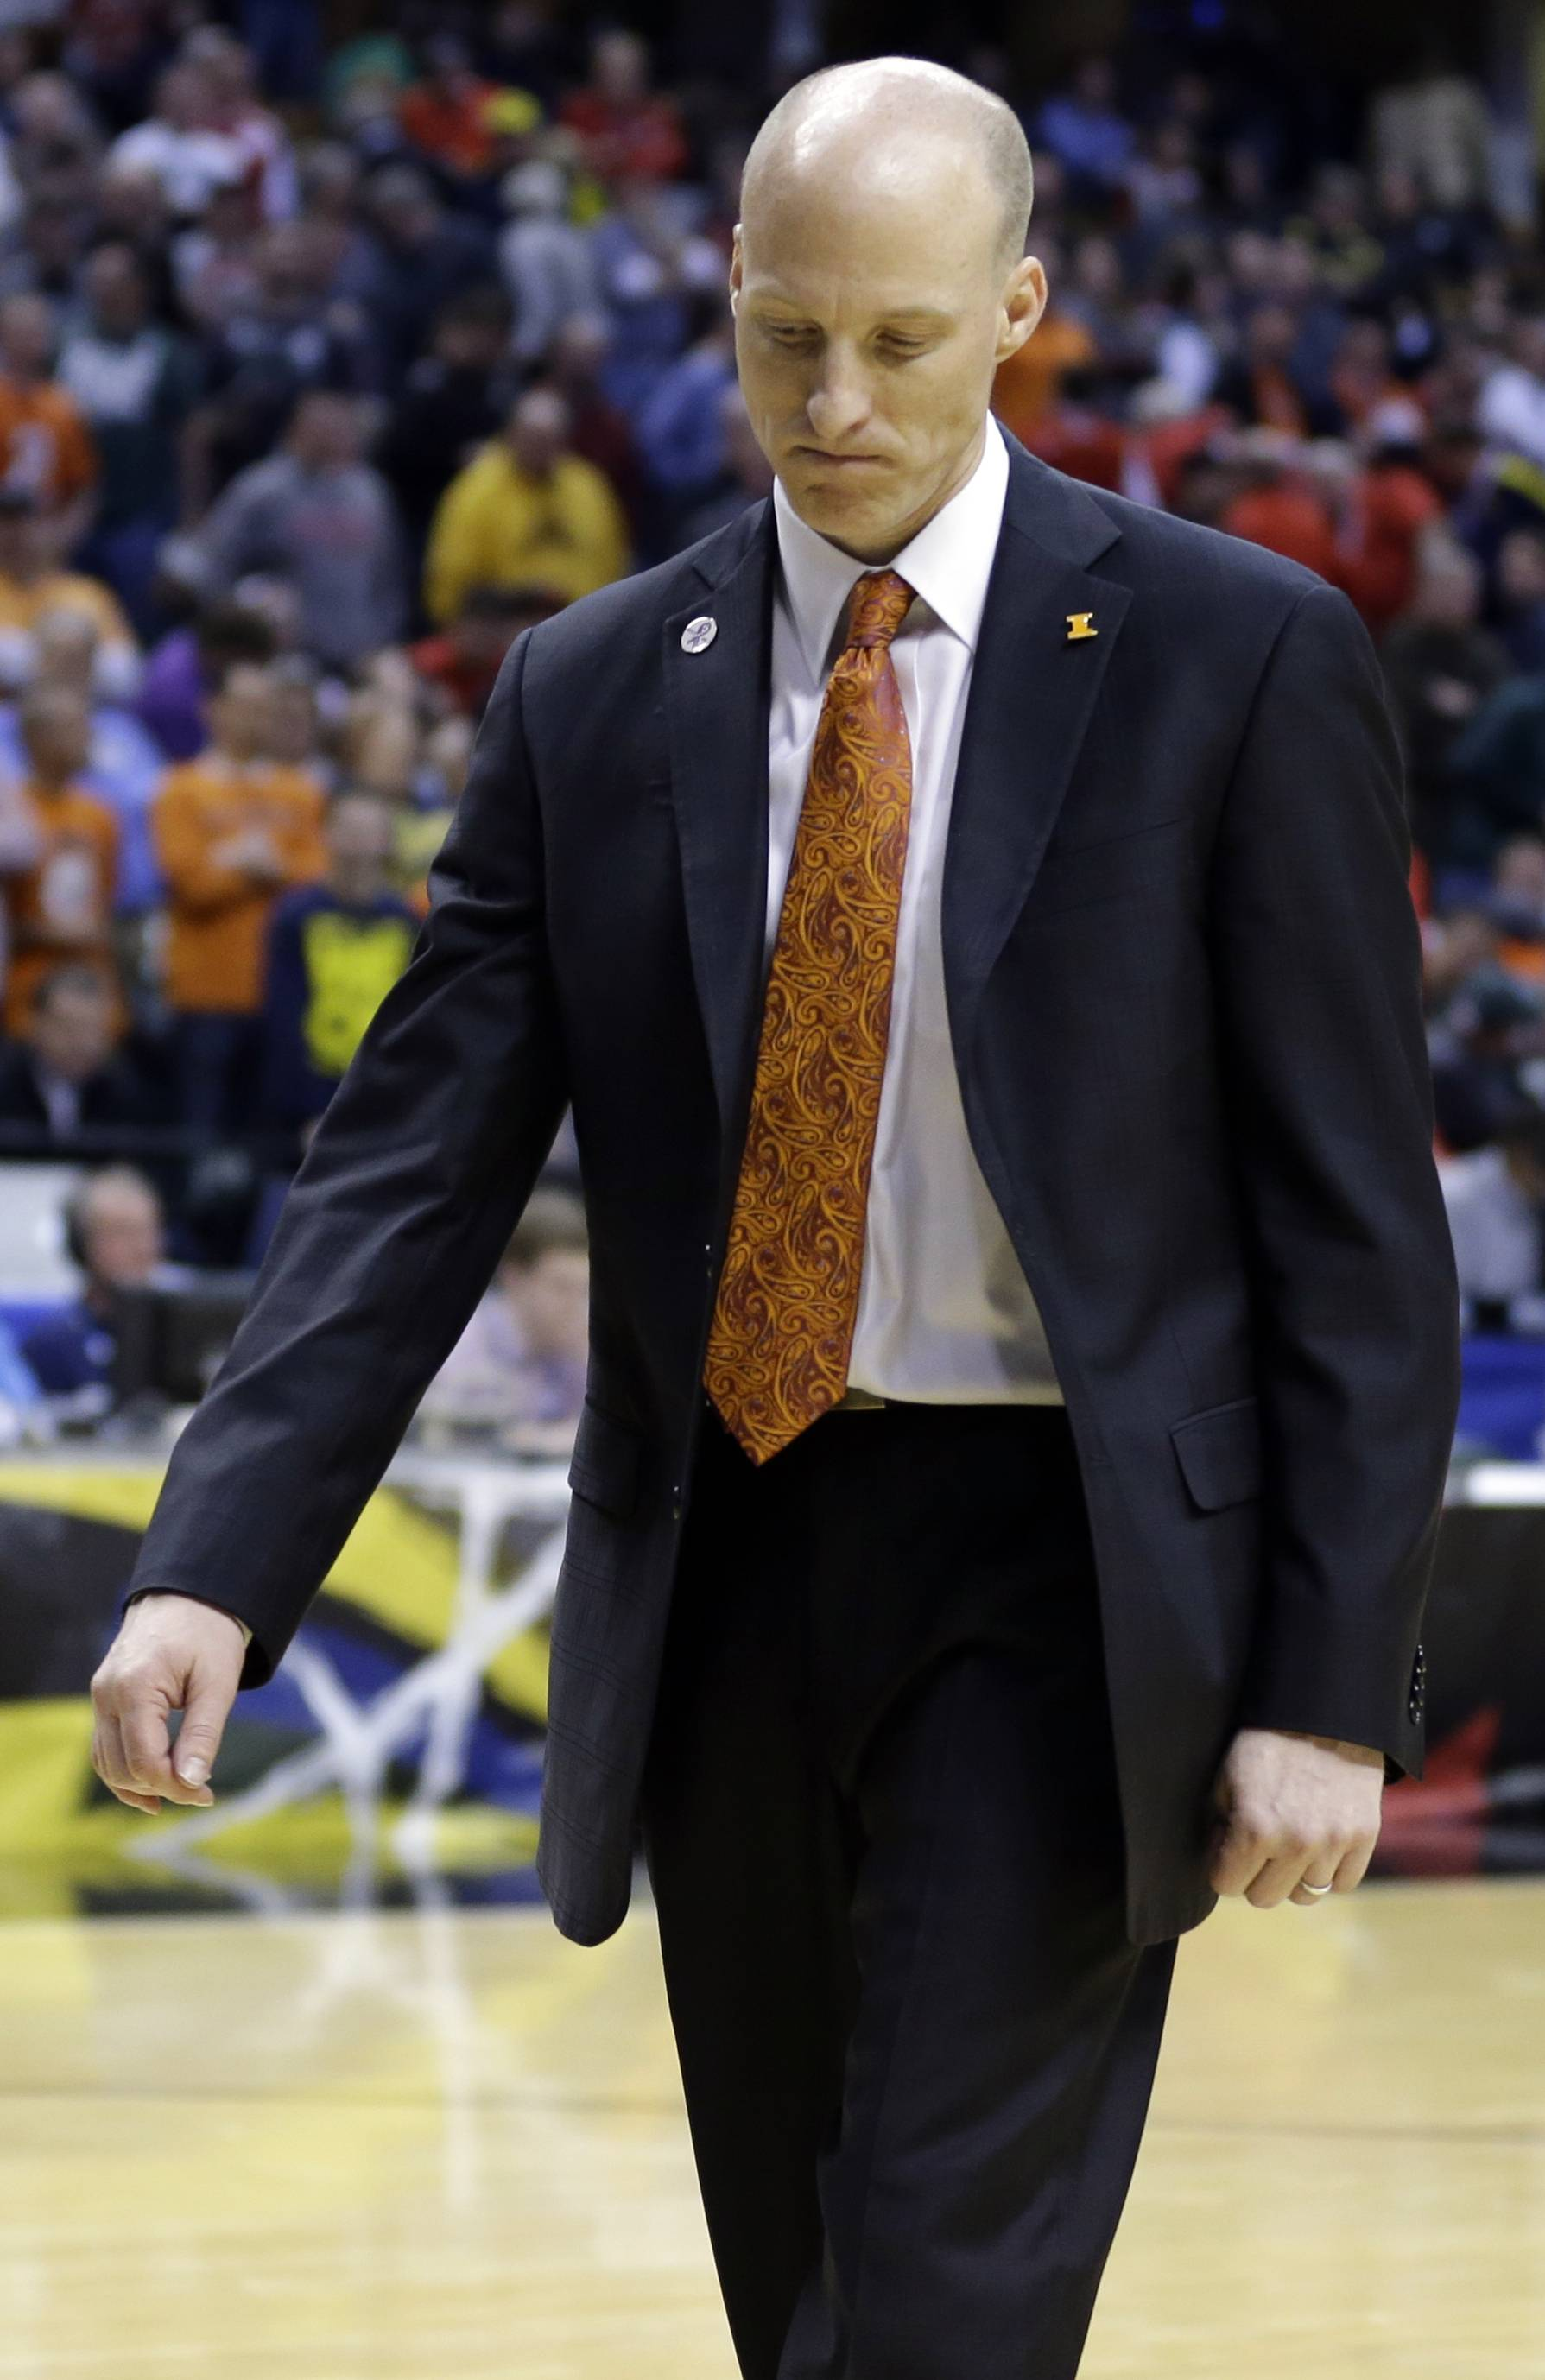 Illinois head coach John Groce walks off the court Friday after losing to Michigan in the quarterfinals of the Big Ten Conference tournament in Indianapolis.